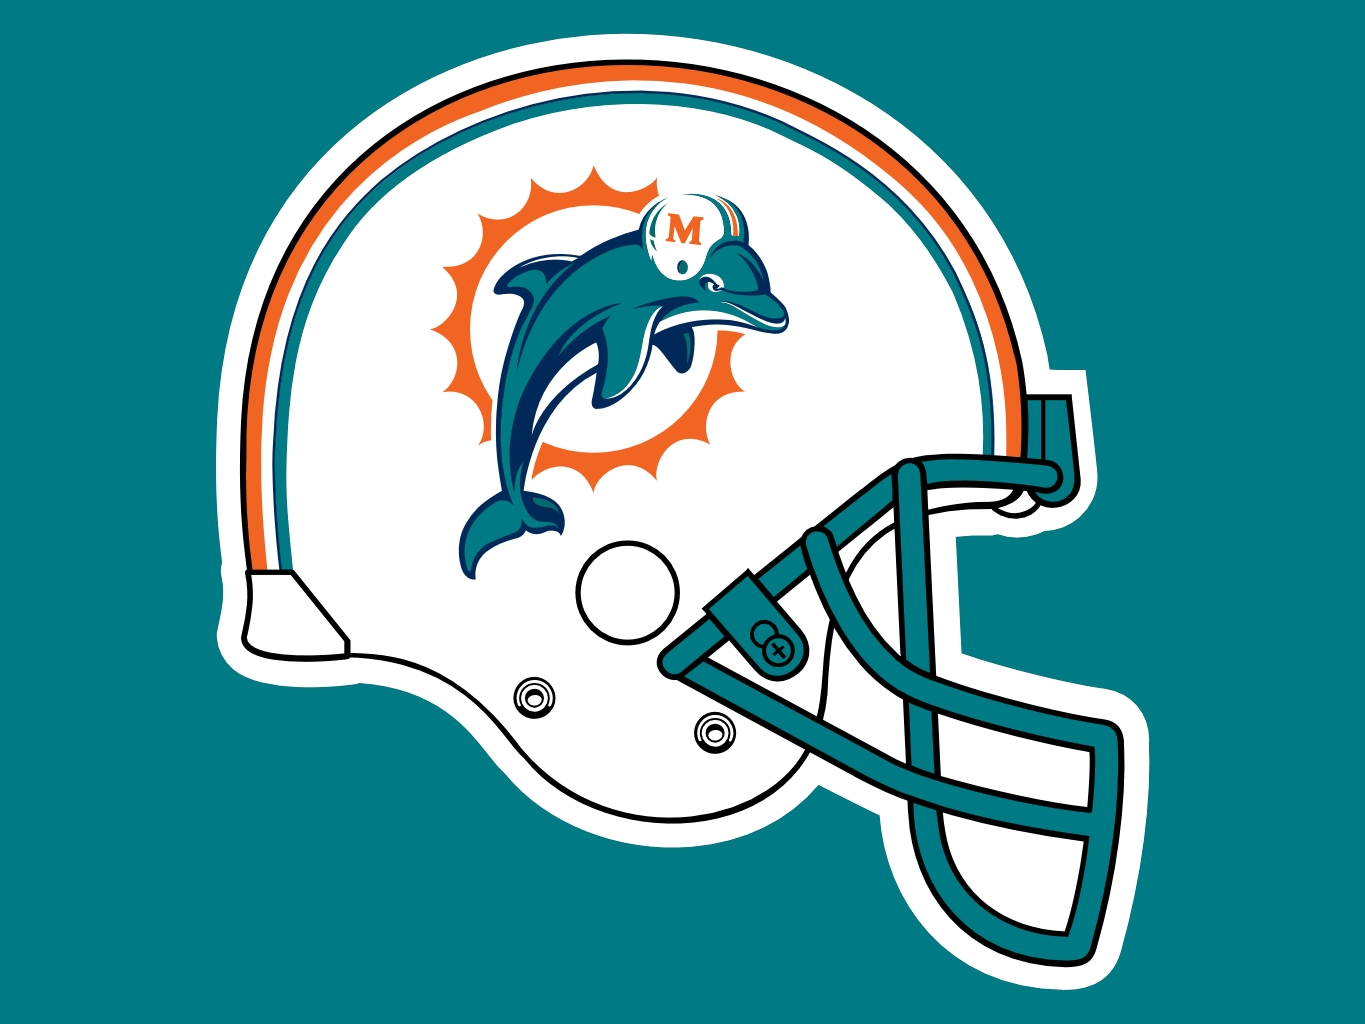 The best source for Miami Dolphins news rumors analysis and more from dedicated sports journalists at the South Florida Sun Sentinel